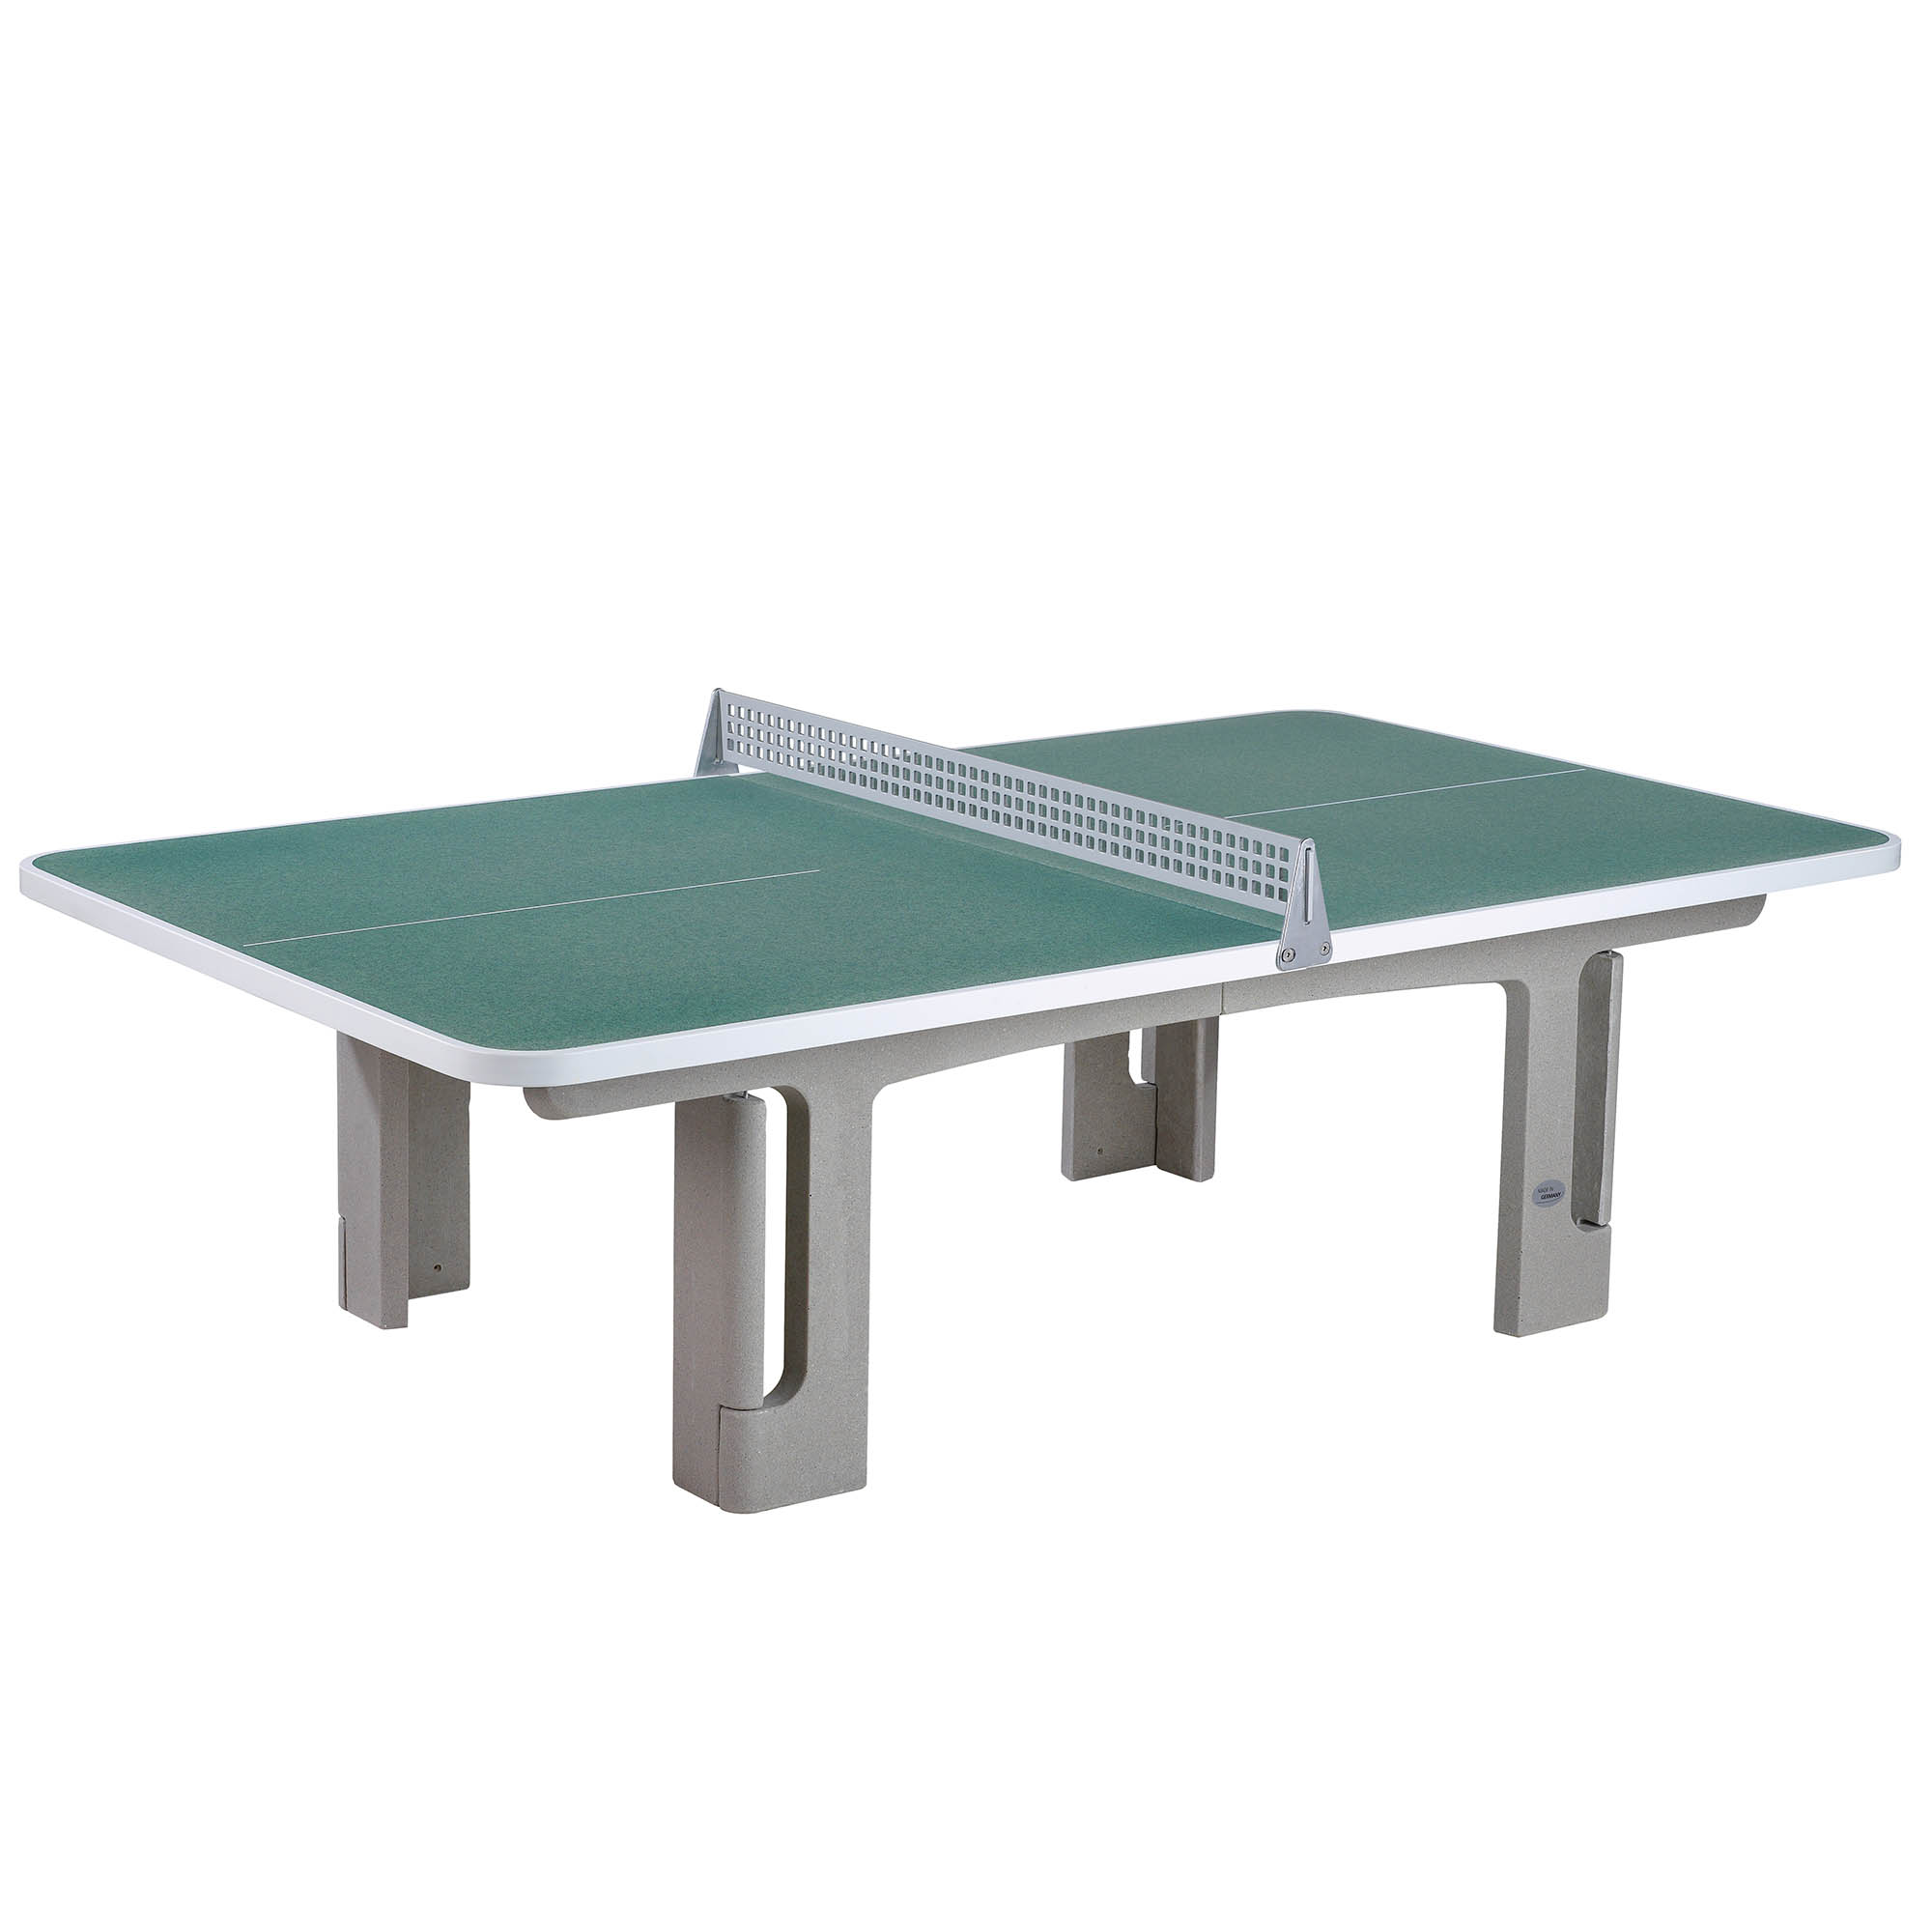 Image of Butterfly B2000 Standard Concrete Table 30SQ Table Tennis Table - Graphite Green